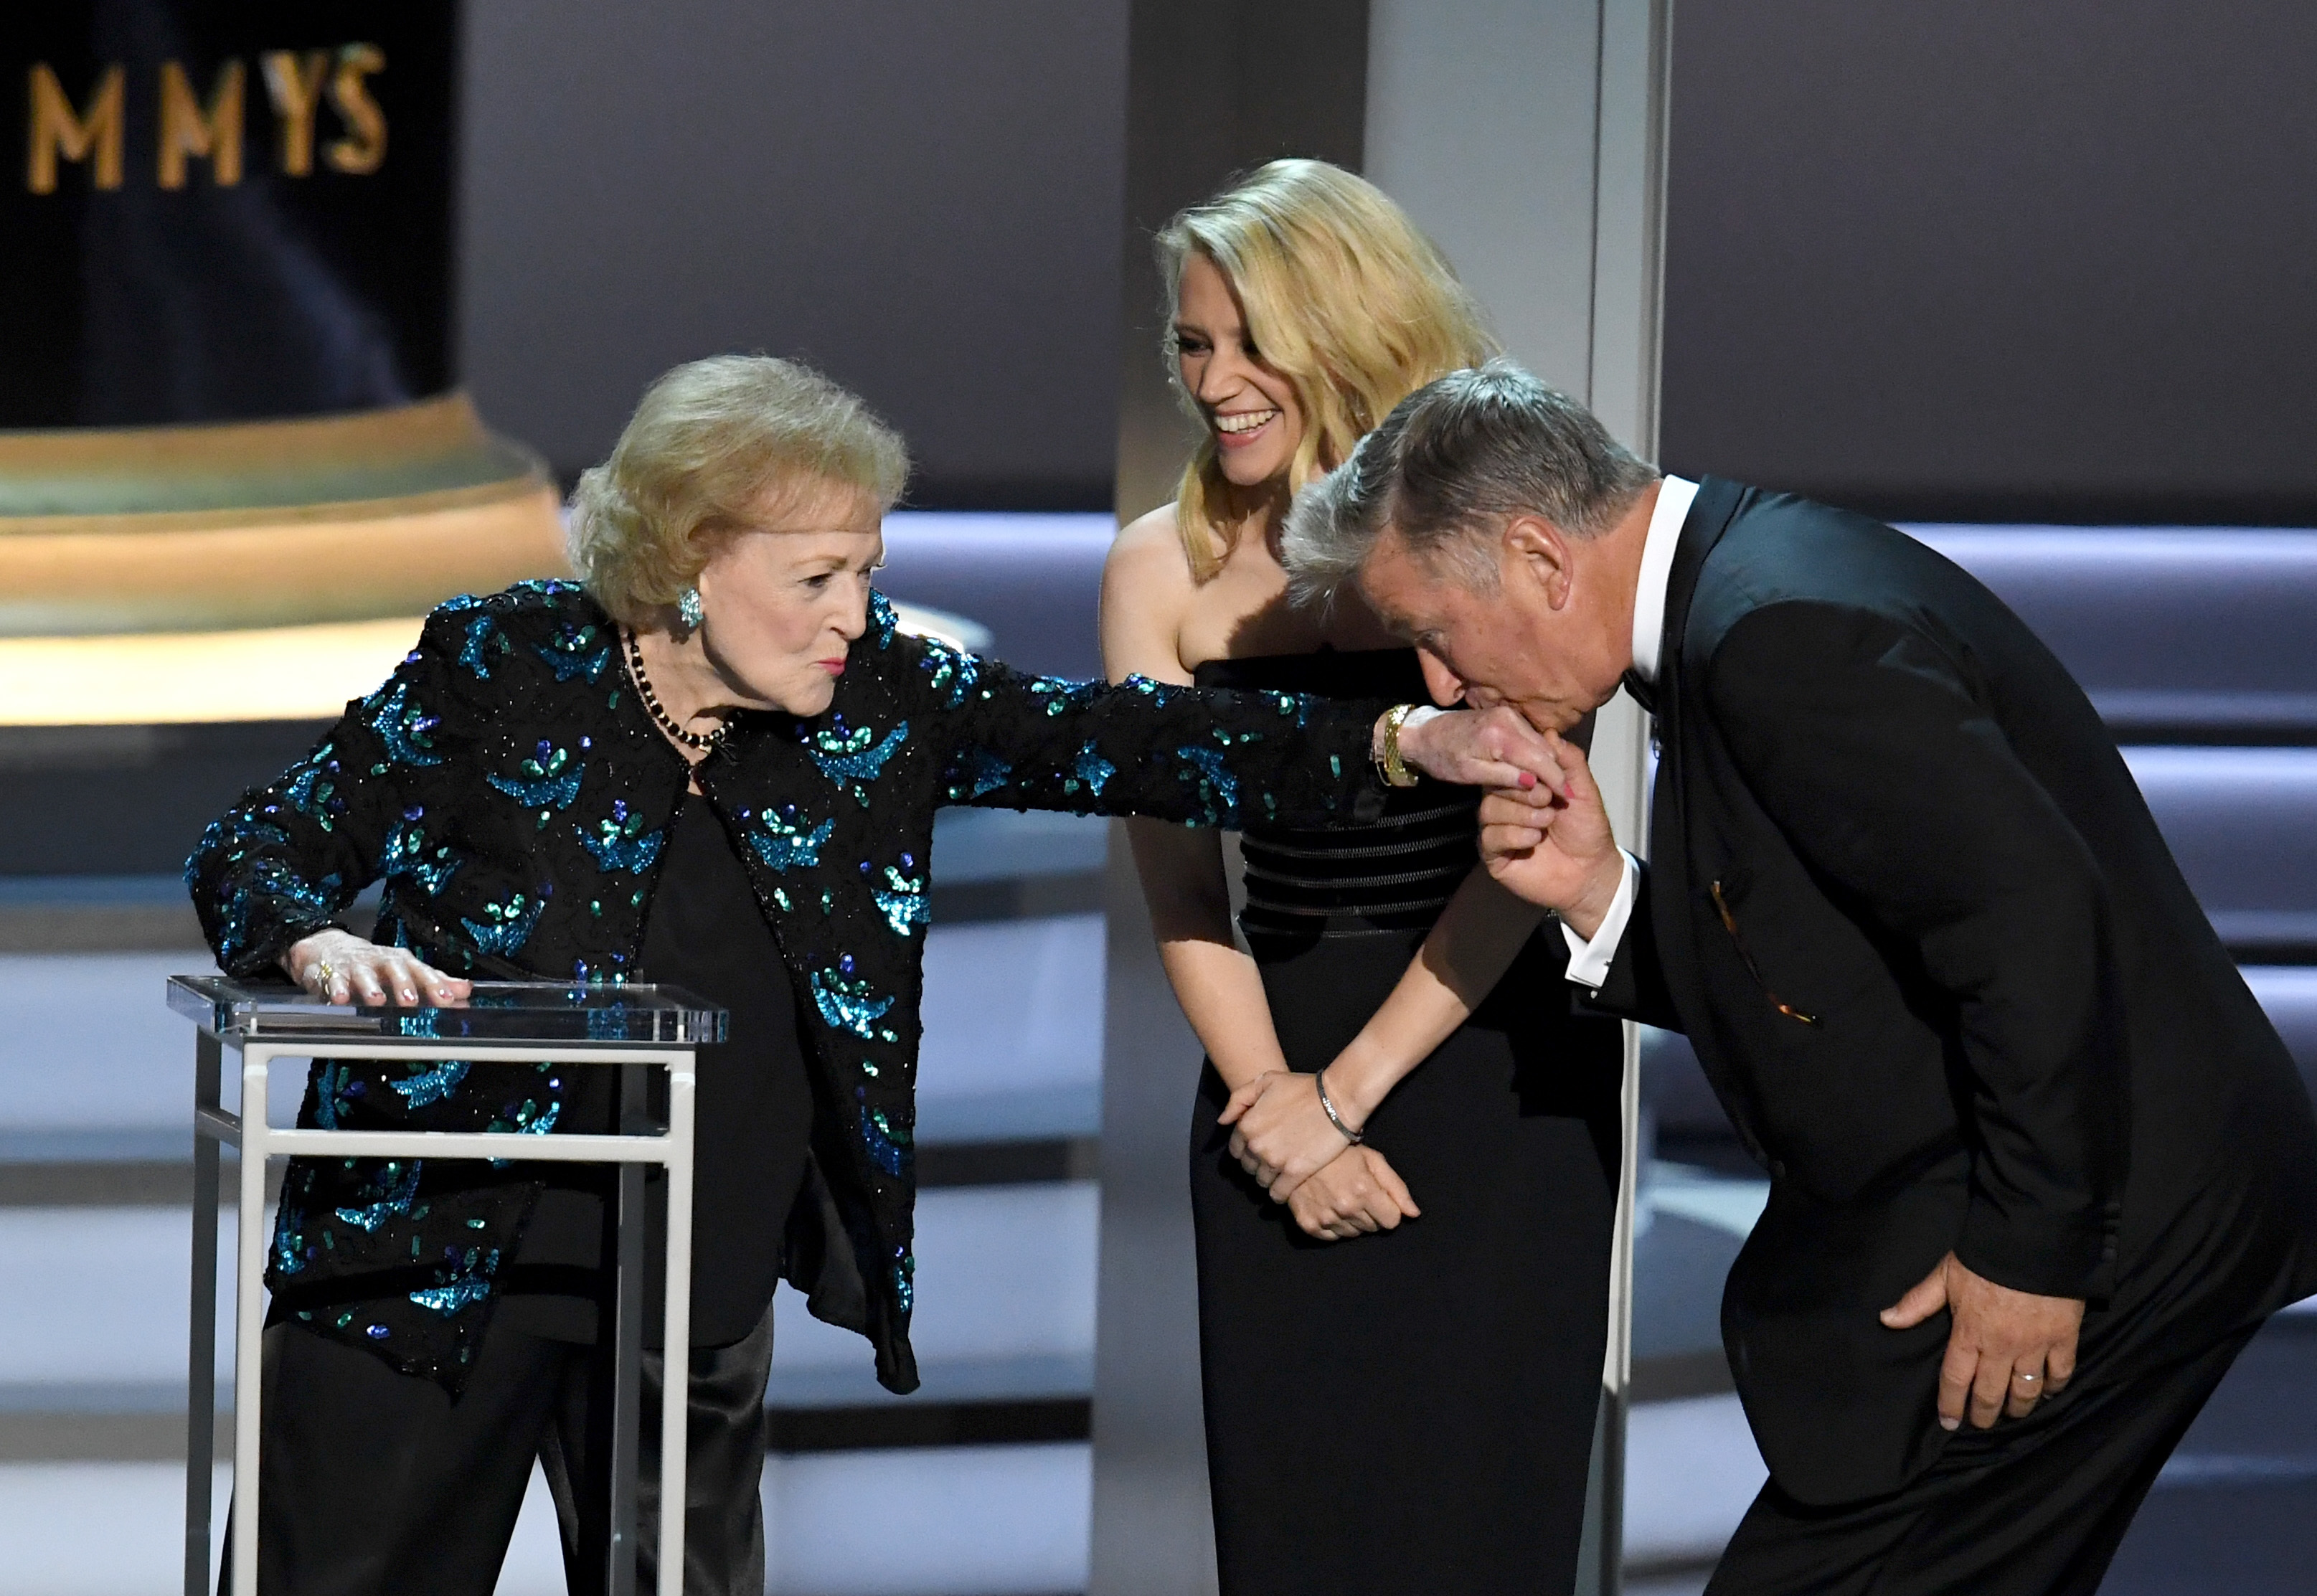 Betty White, Kate McKinnon and Alec Baldwin speak onstage during the 70th Emmy Awards at the Microsoft Theater in Los Angeles on Sept. 17, 2018.